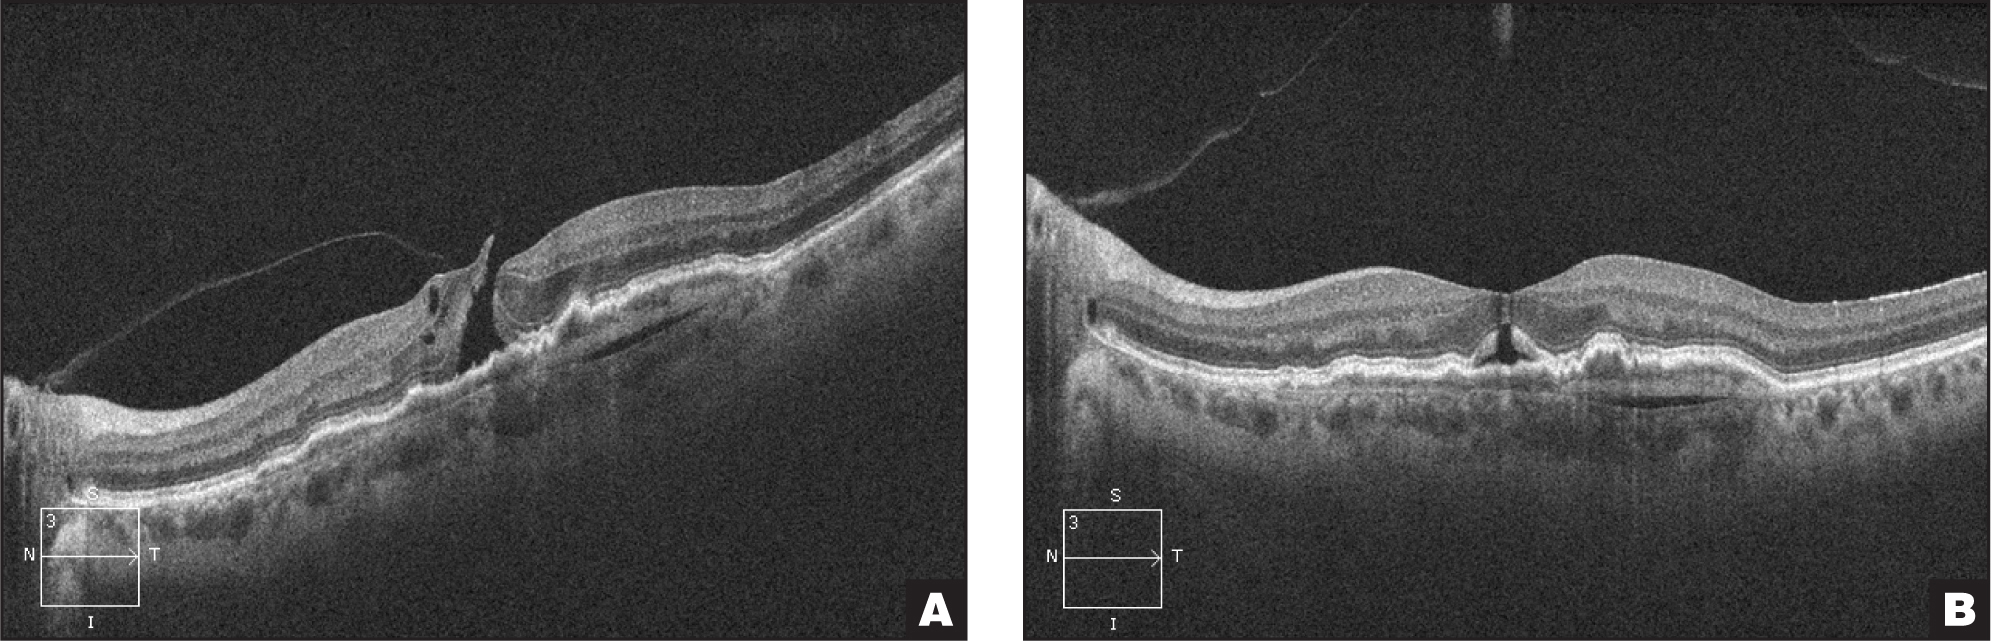 (A) Micro-full-thickness macular hole due to focal adhesion seen here in the setting of dry macular degeneration treated with ocriplasmin, (B) showing late anatomic improvement at day 42.